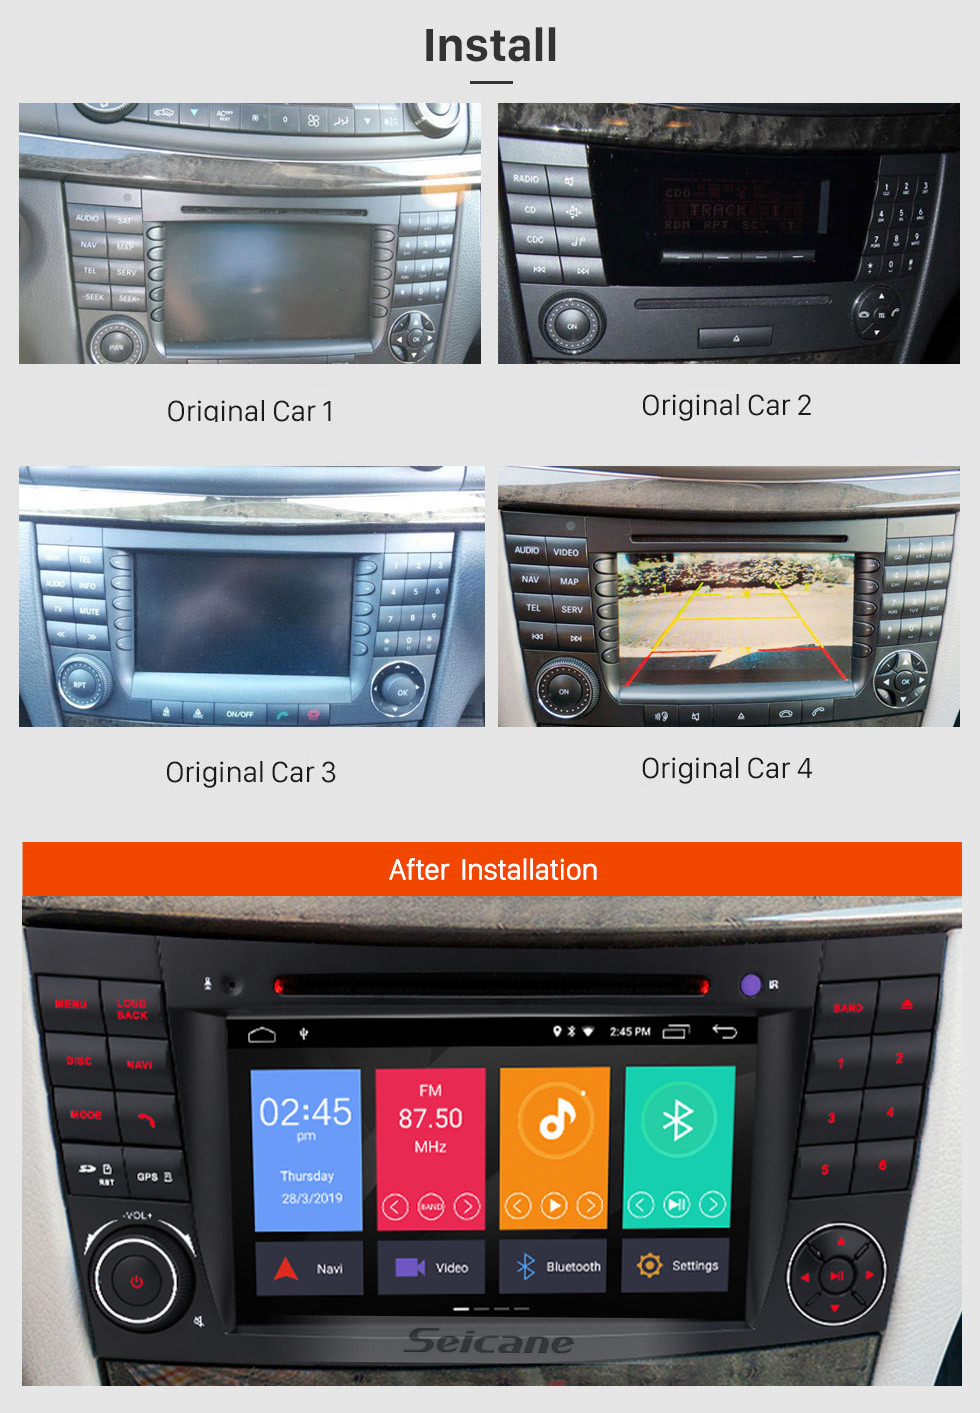 Seicane Android 9.0 7 Inch Car DVD Player for 2004-2011 Mercedes-Benz CLS W219 Touchscreen GPS Navi Bluetooth WIFI